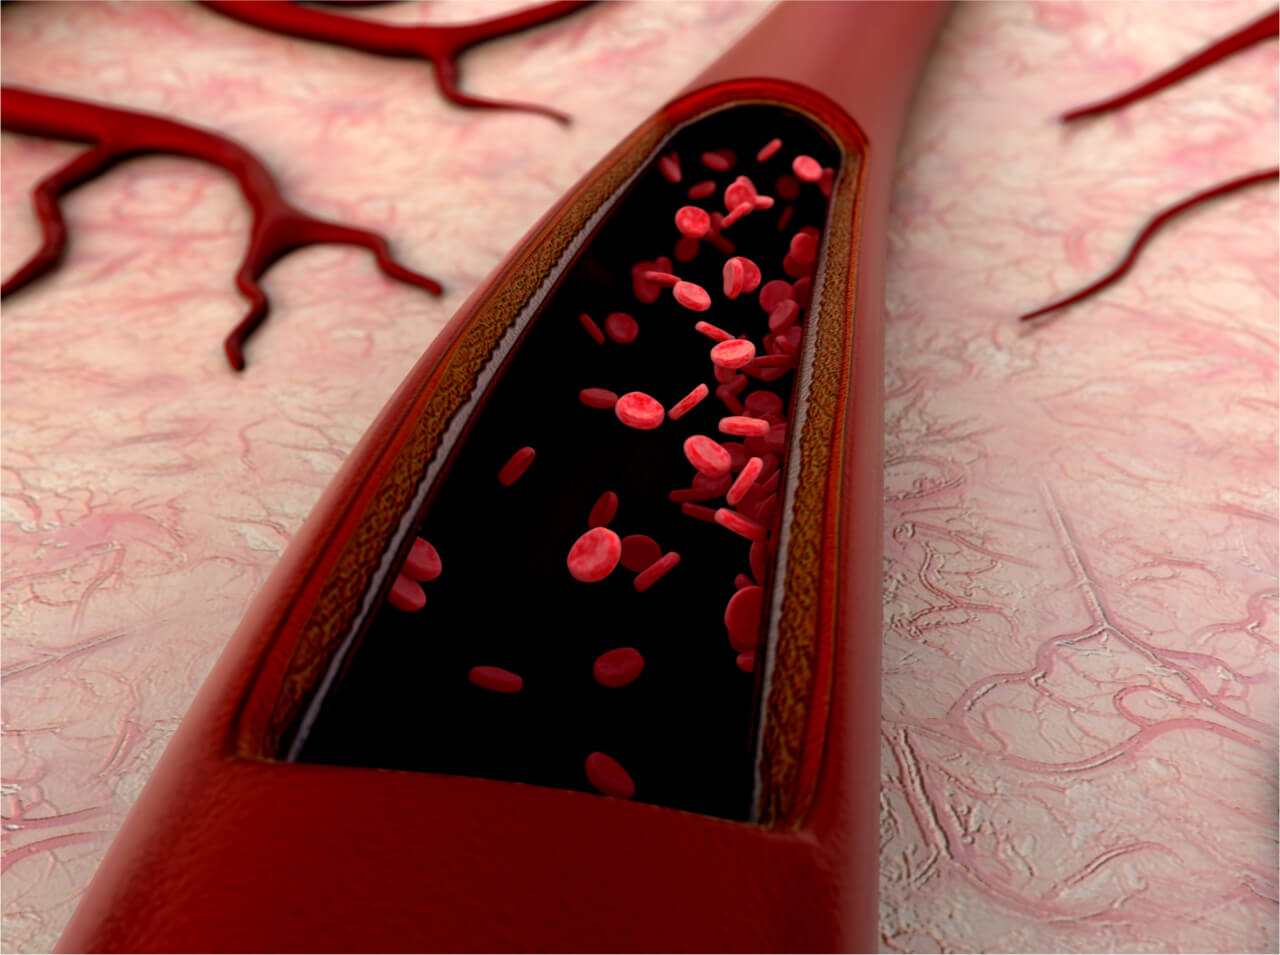 Major Differences Between Arteries and Veins